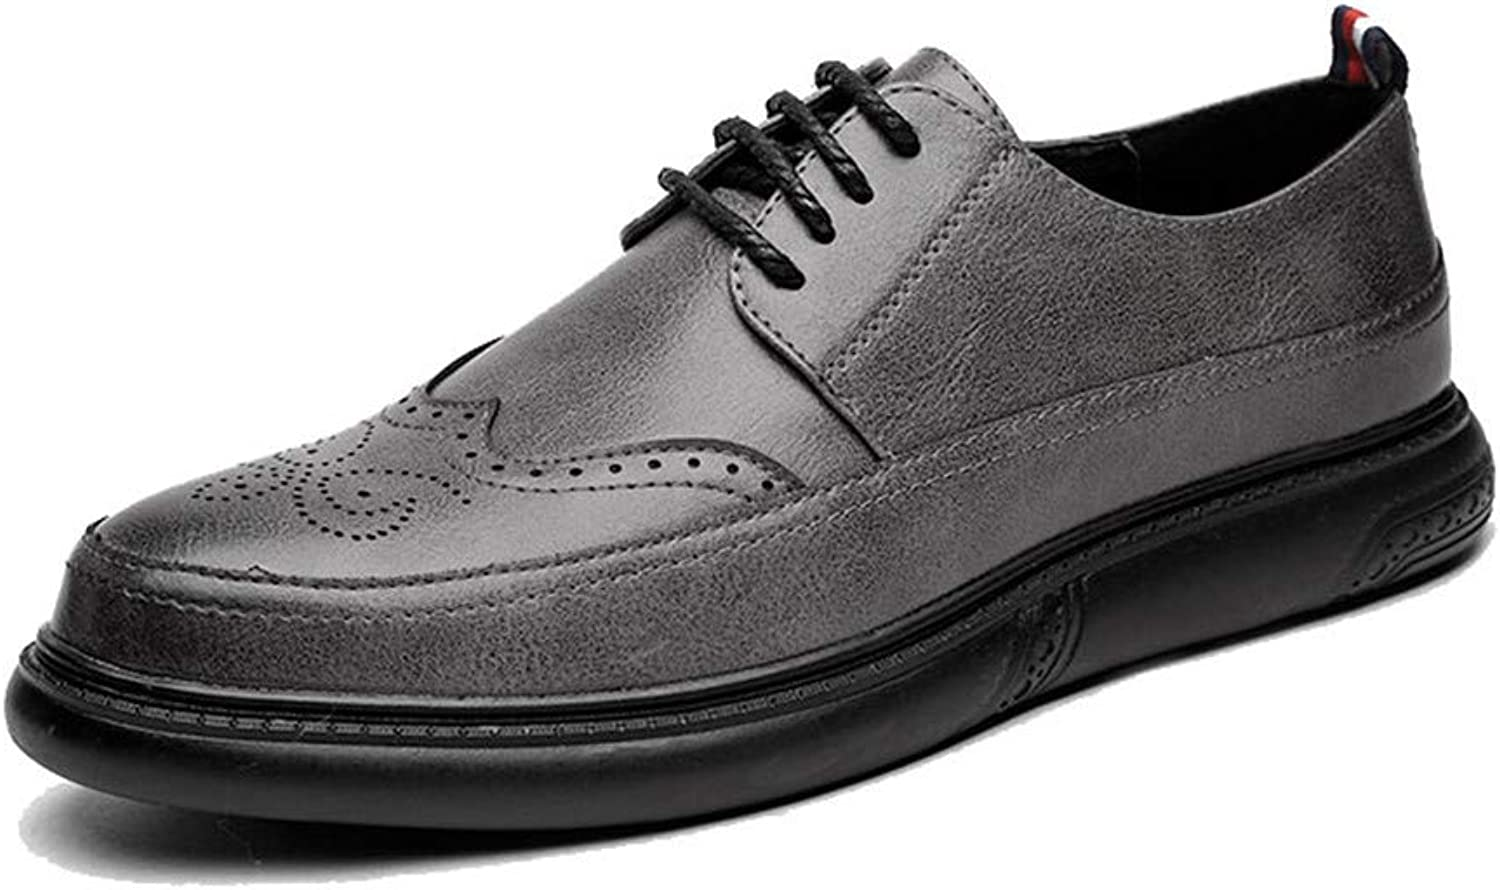 XHD-Men's shoes Fashion Men's Business Oxford Casual Classic Solid Coloured Pointed Toe Breathable Brogue shoes